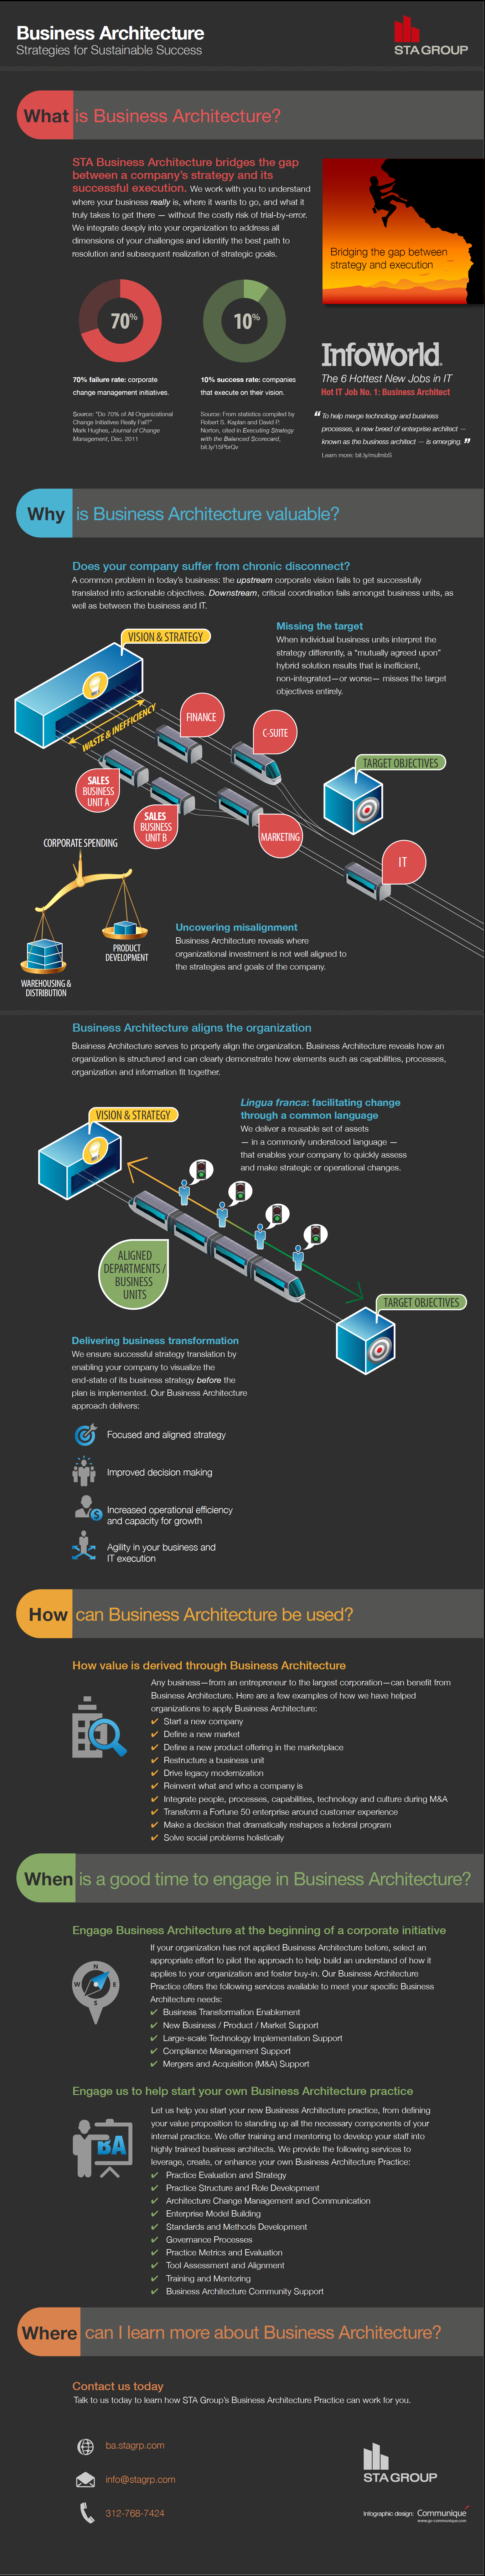 Business Architecture Strategies for Sustainable Success [INFOGRAPHIC]